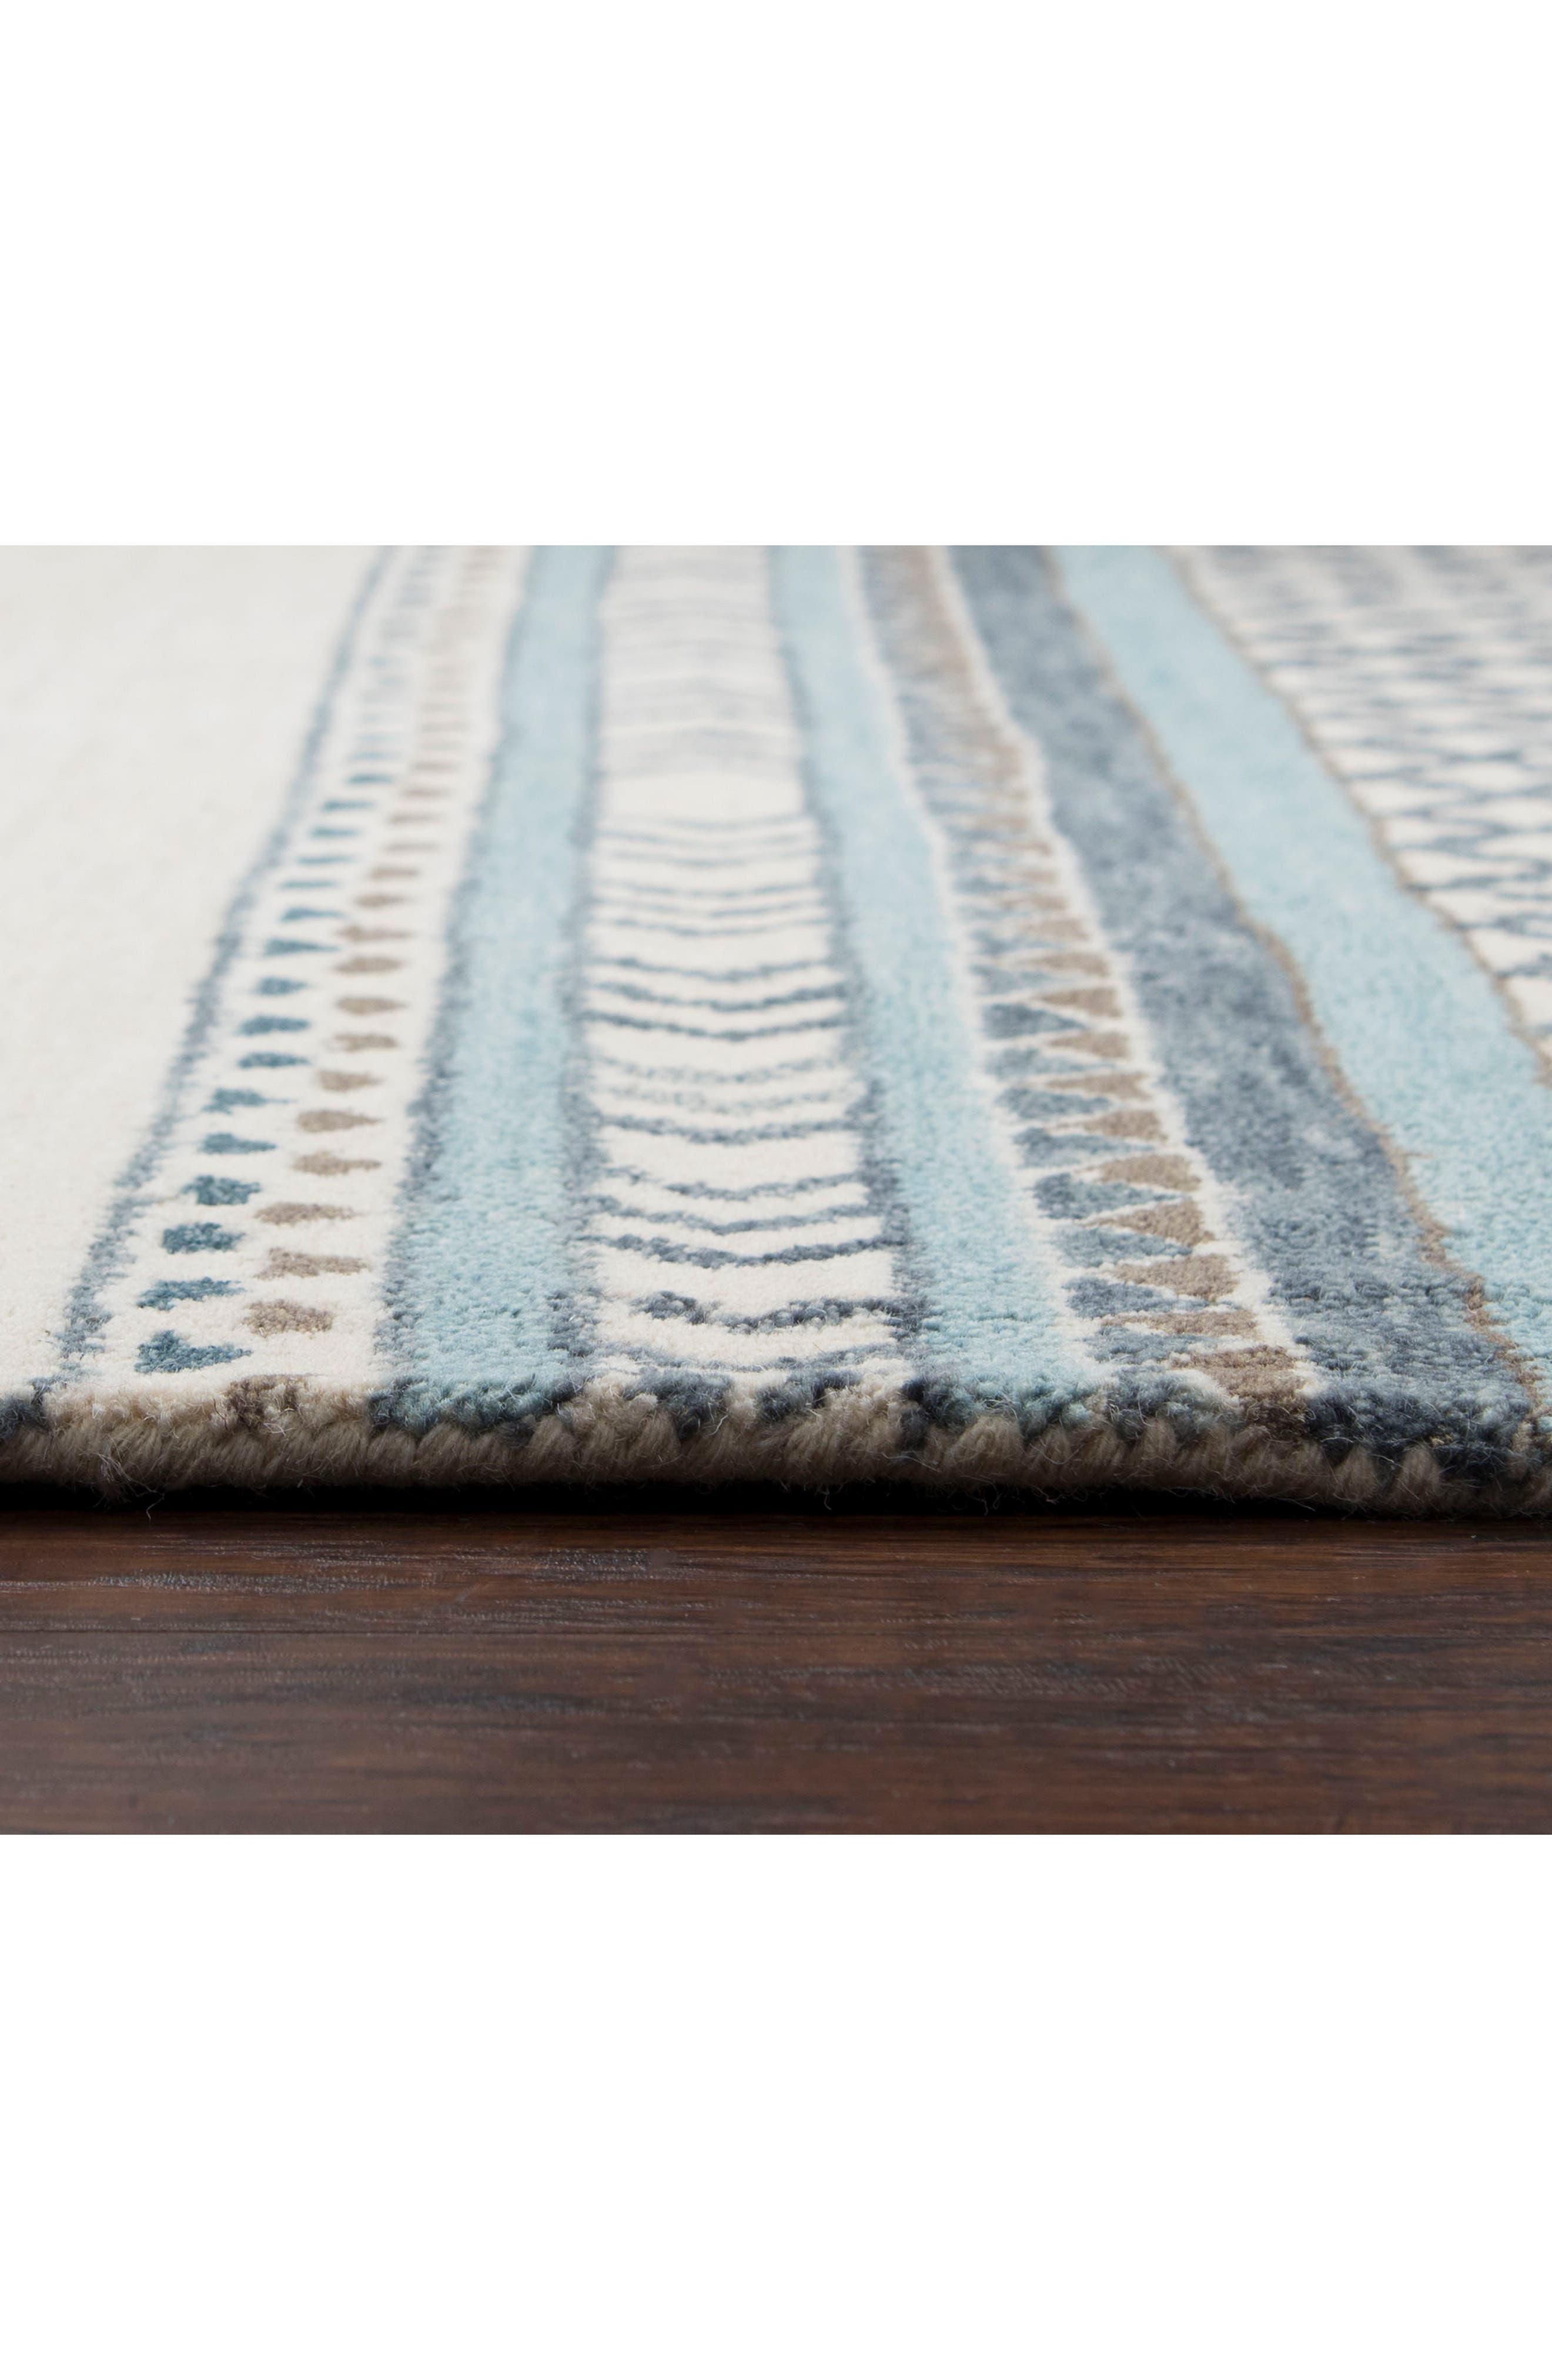 Hand Tufted Wool Blanket Rug,                             Alternate thumbnail 3, color,                             400